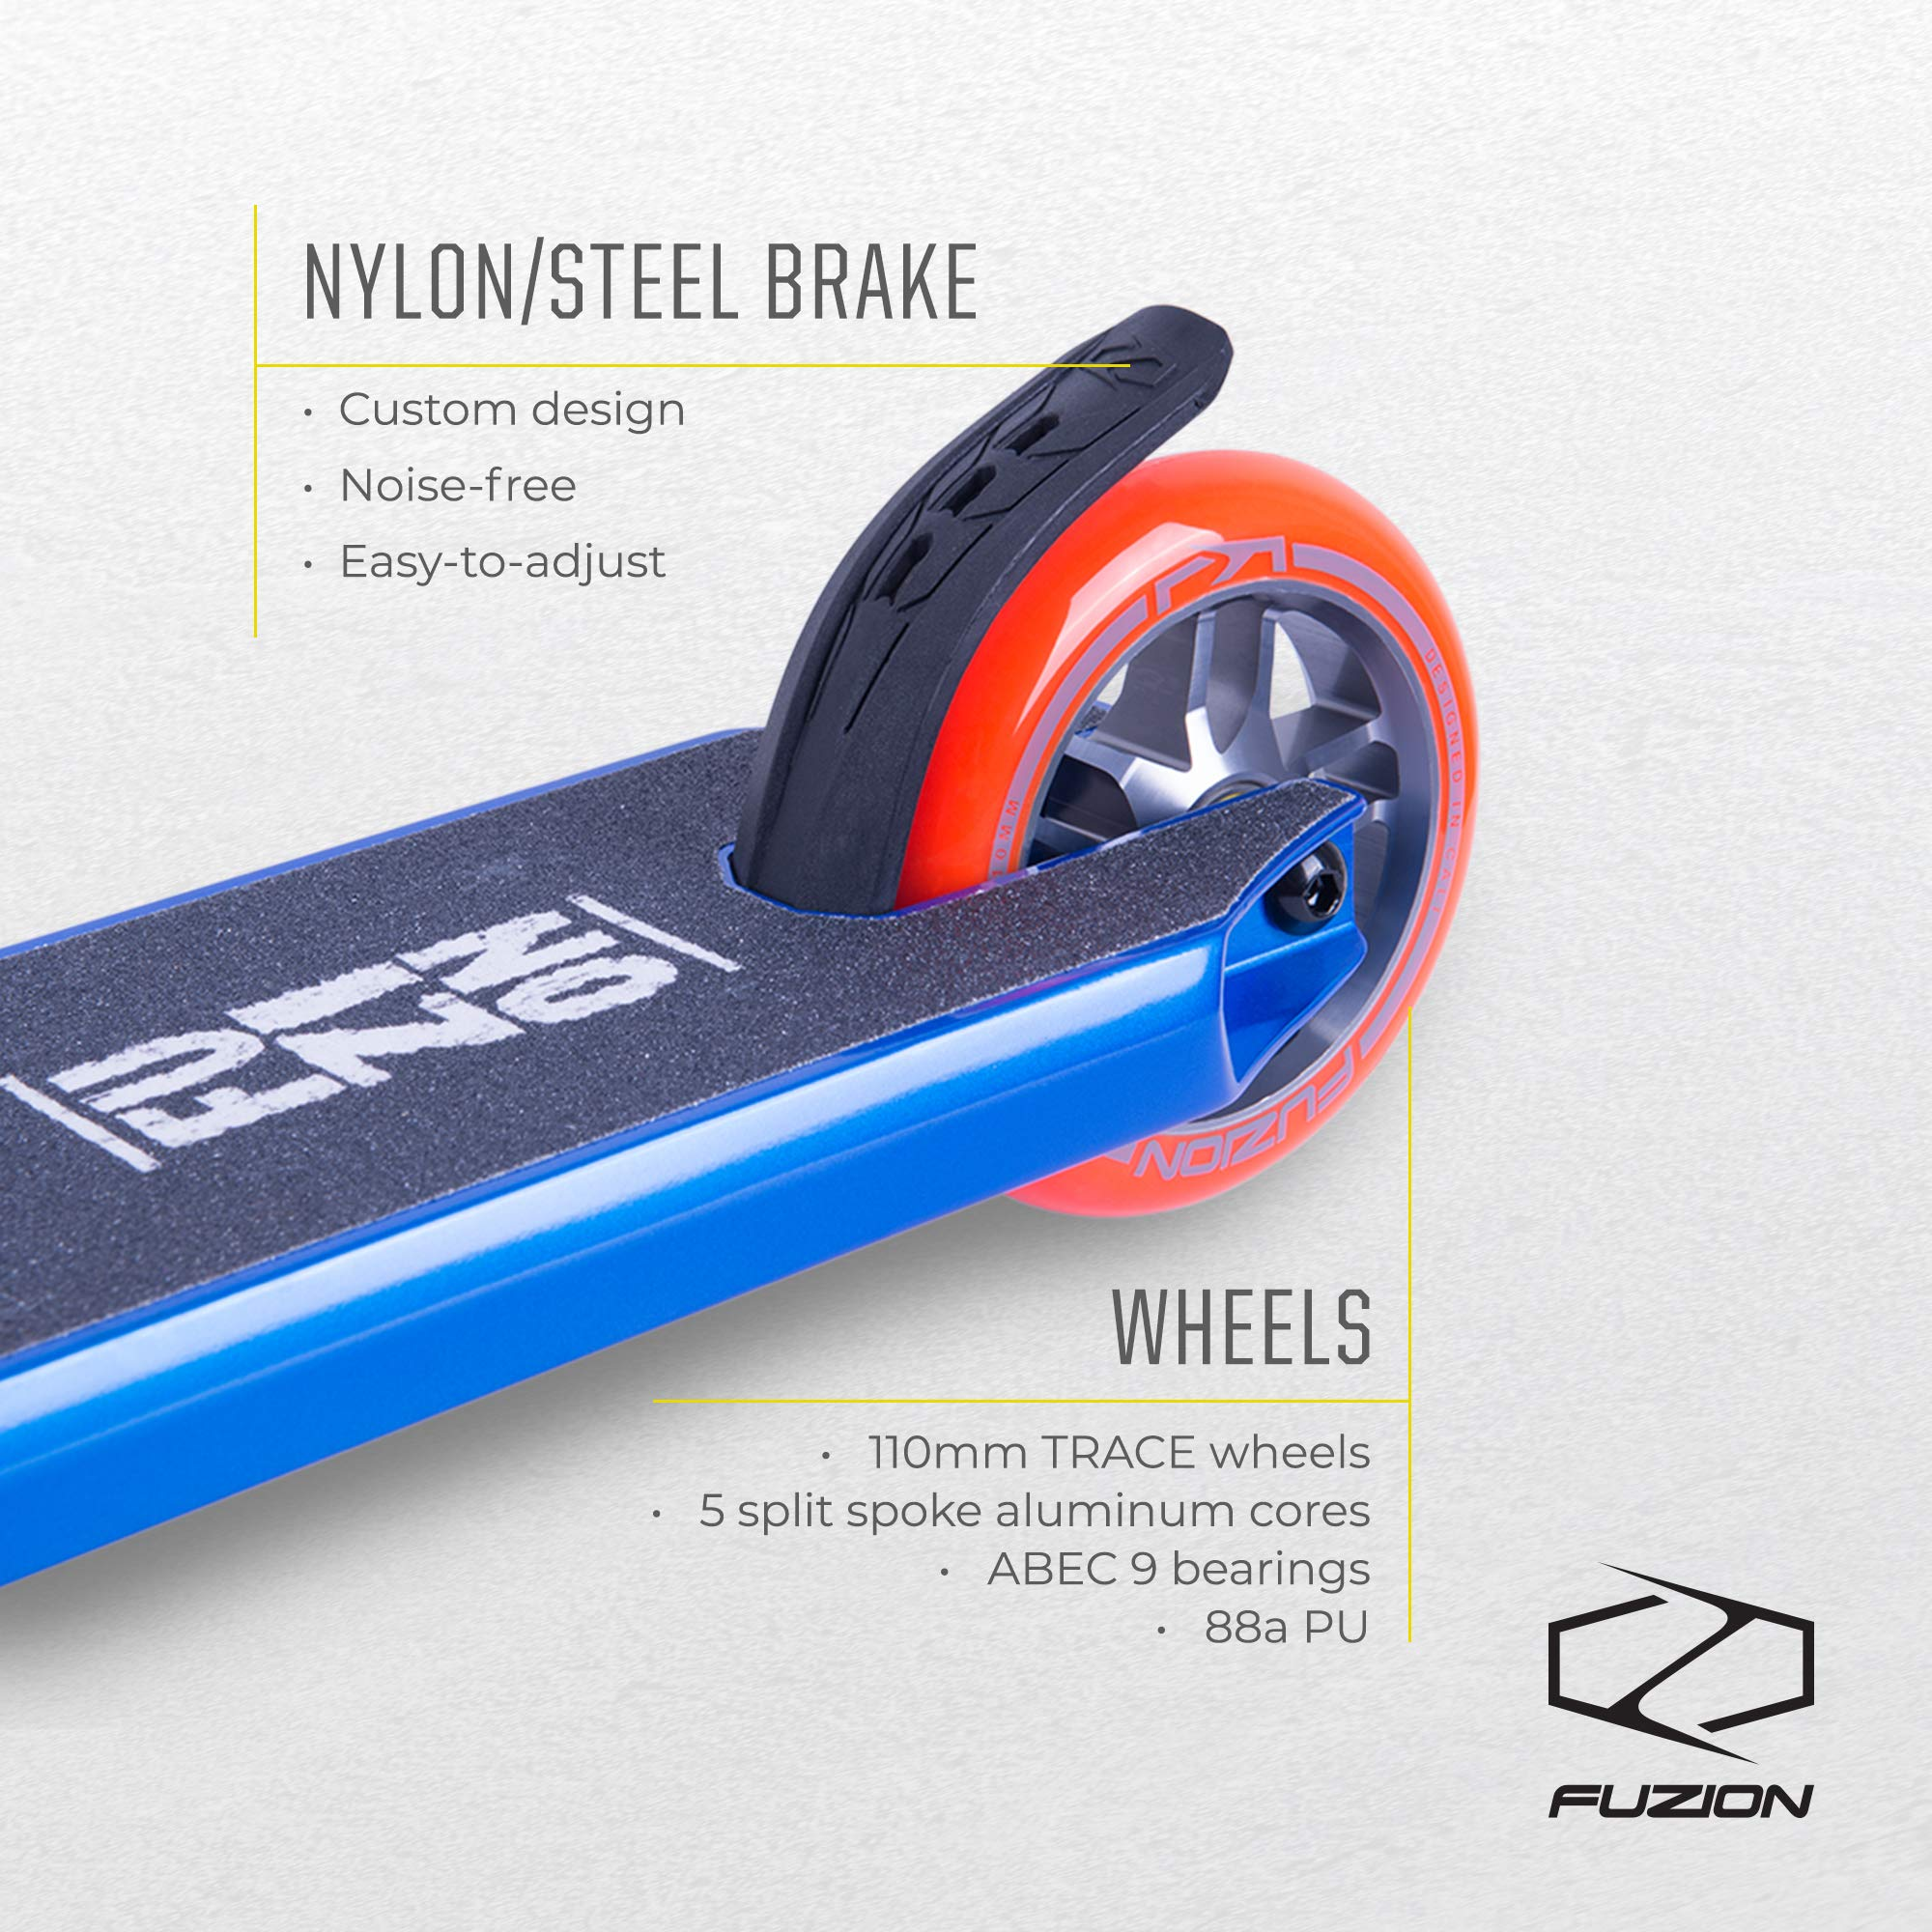 Fuzion Z250 Pro Scooters - Trick Scooter - Intermediate and Beginner Stunt Scooters for Kids 8 Years and Up, Teens and Adults – Durable Freestyle Kick Scooter for Boys and Girls (2019 Racing Blue) by Fuzion (Image #5)